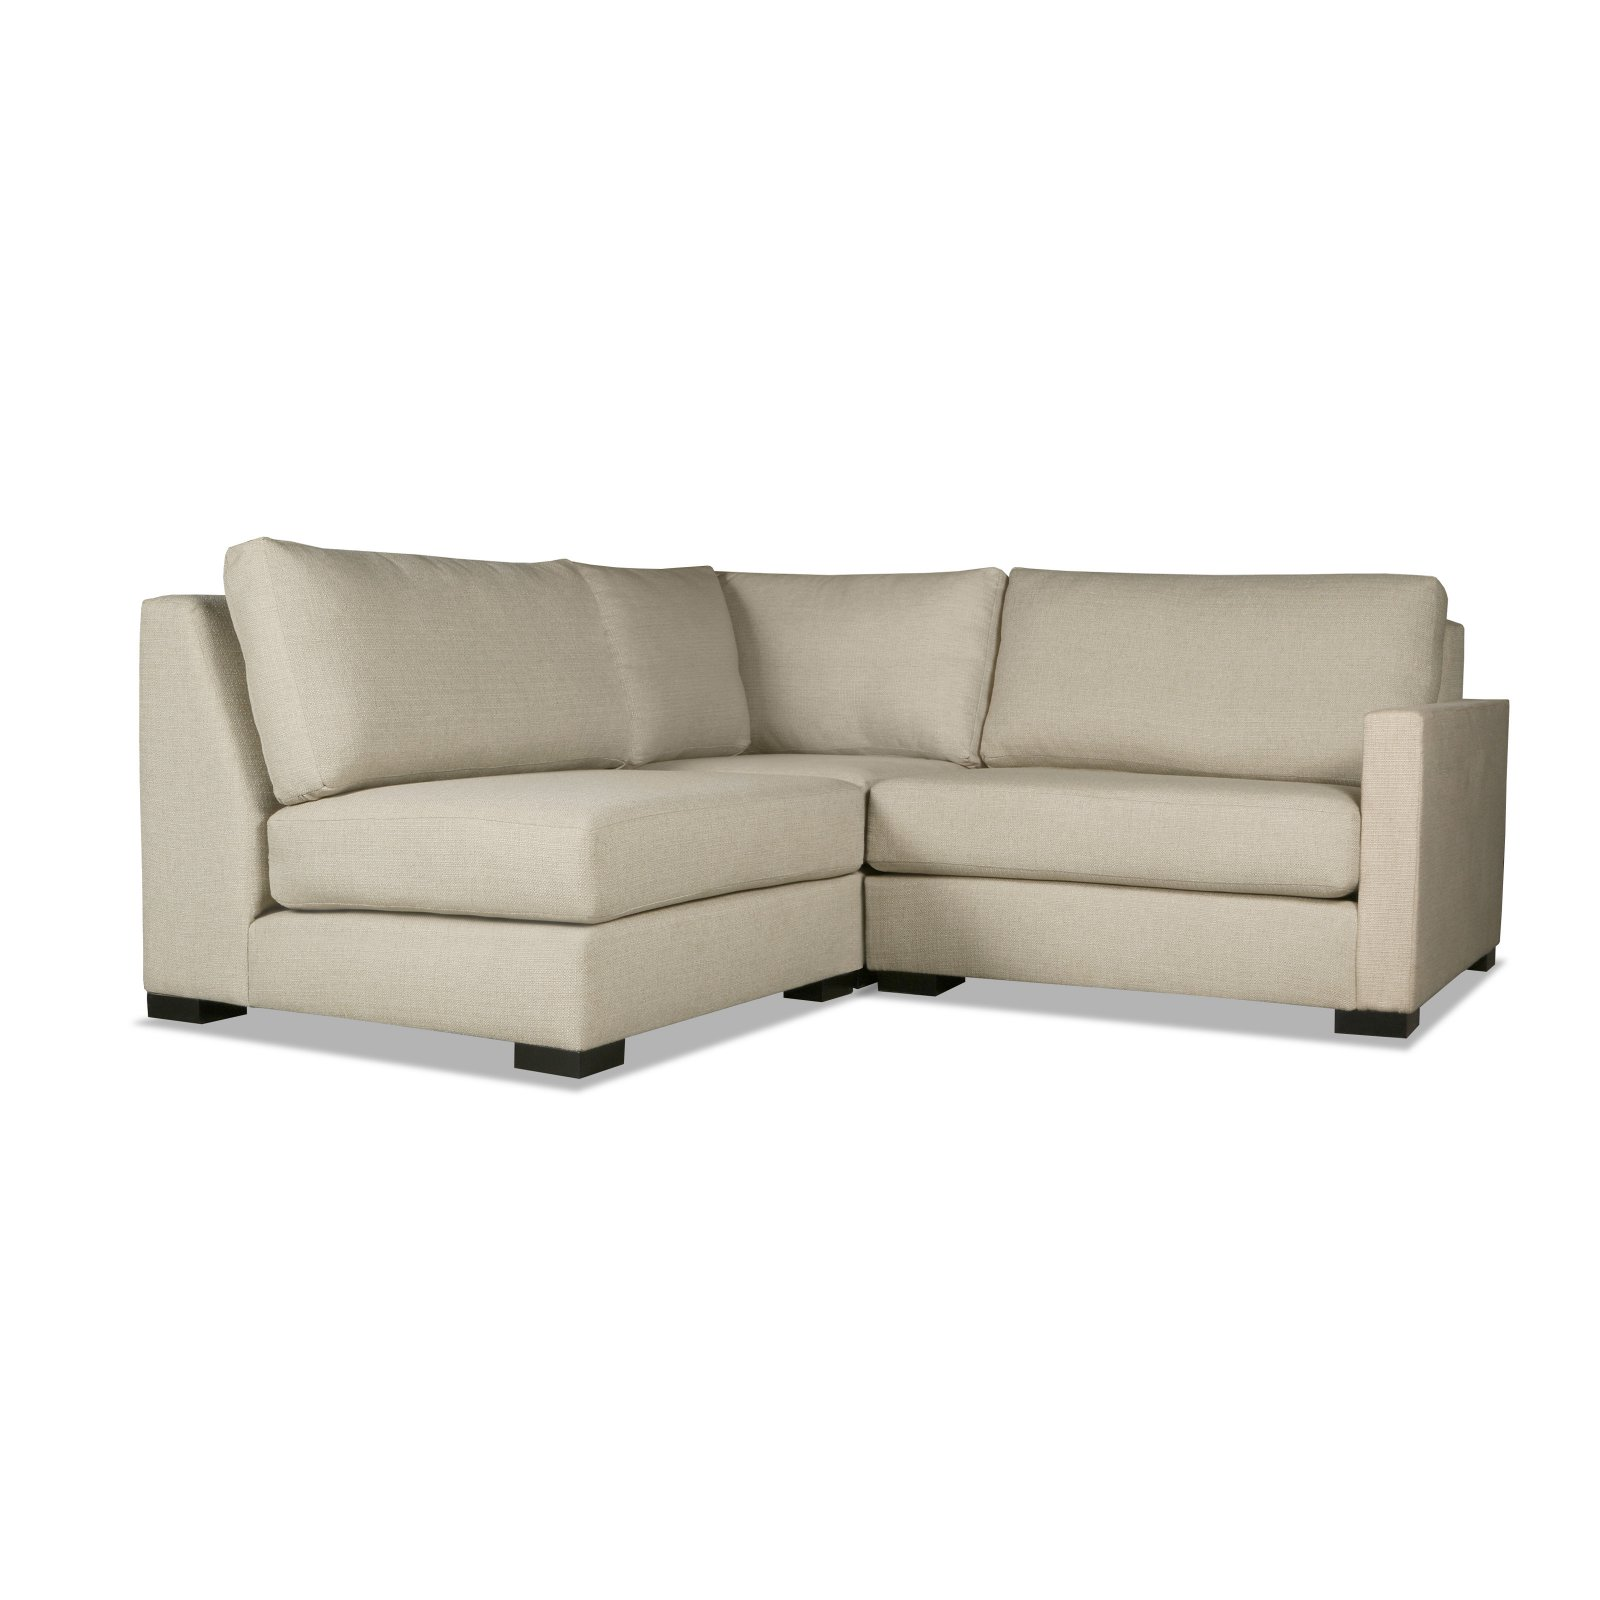 South Cone Mayfair Modular Right Arm L Shape Mini Sectional Sofa Grey Sectional Sofa Sectional Modular Sectional